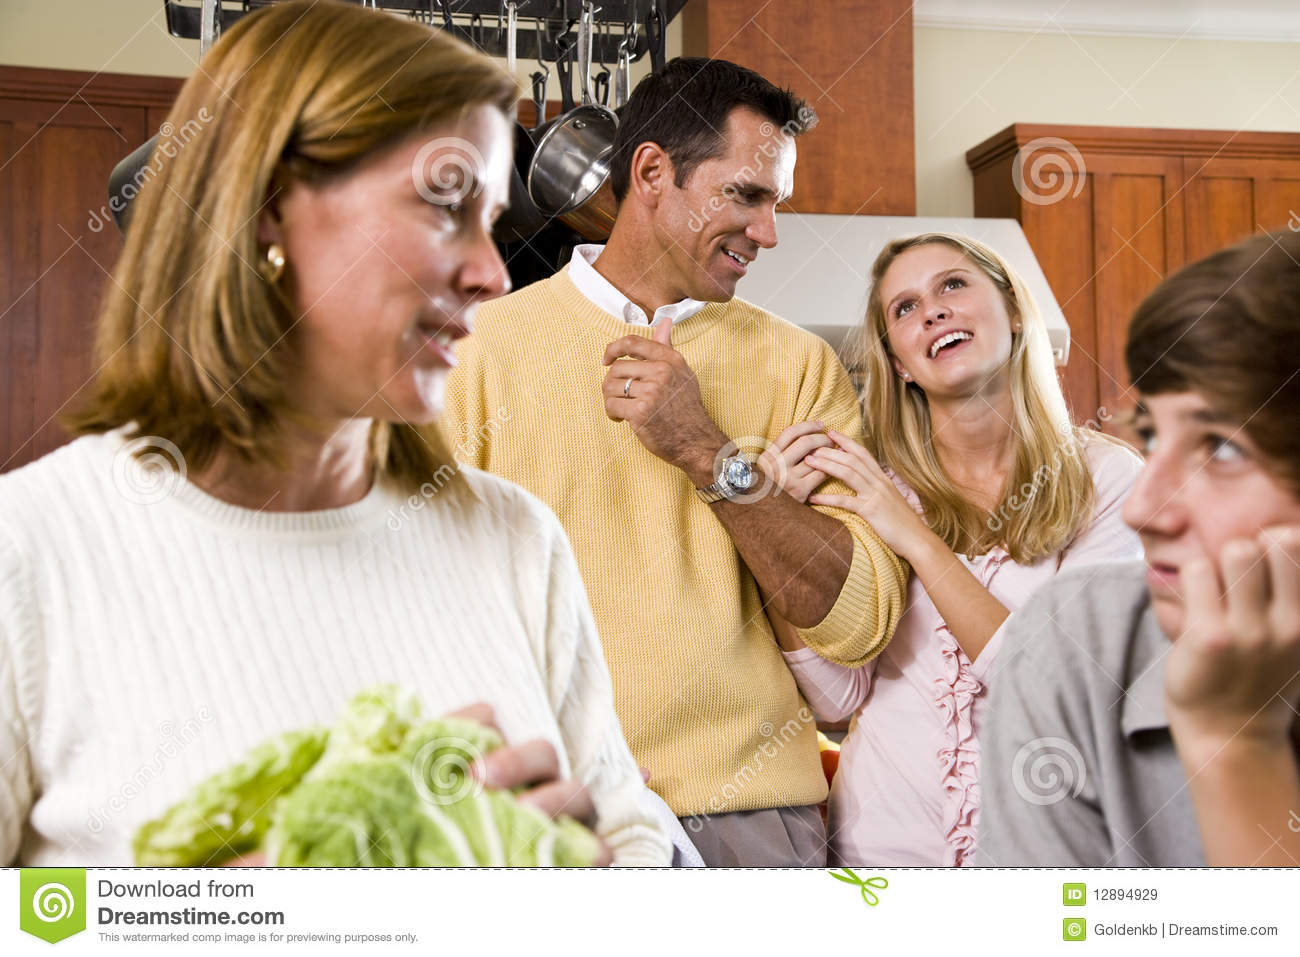 Closeup cheerful family in kitchen conversing